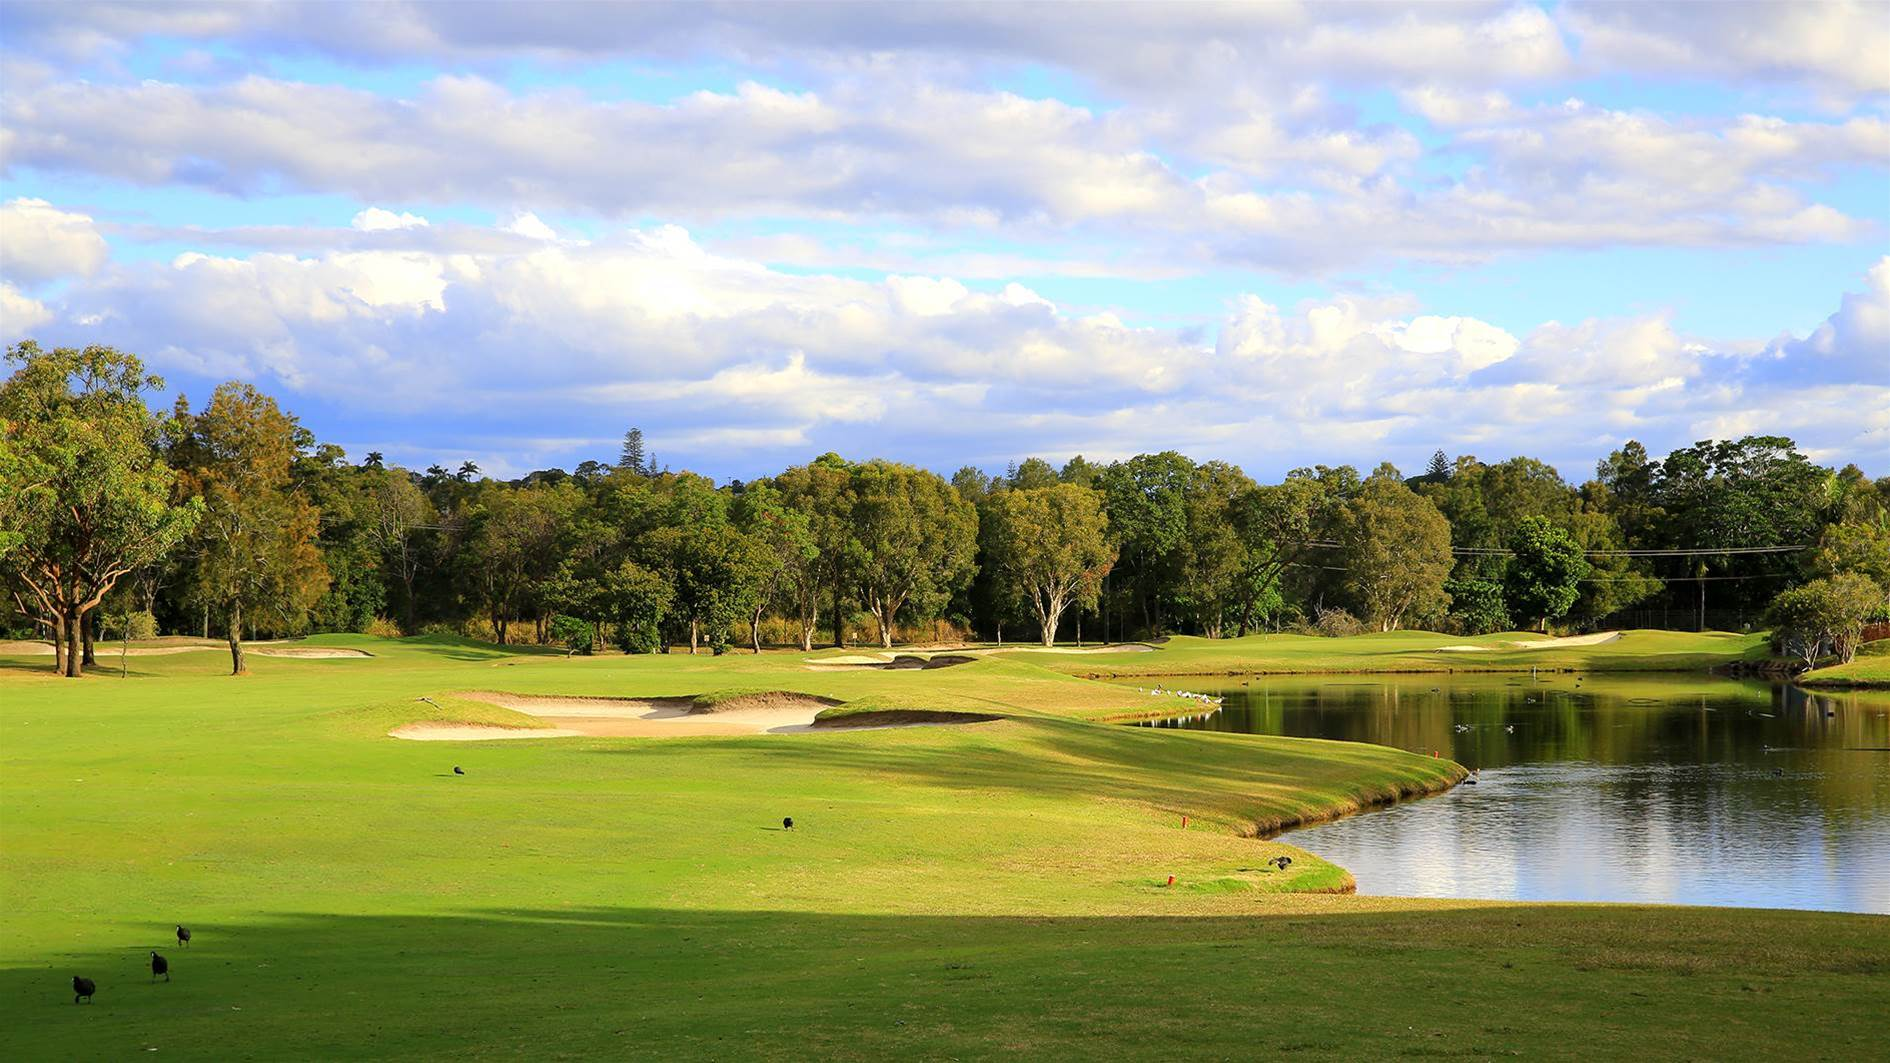 CLUB OF THE MONTH: Coolangatta & Tweed Heads Golf Club